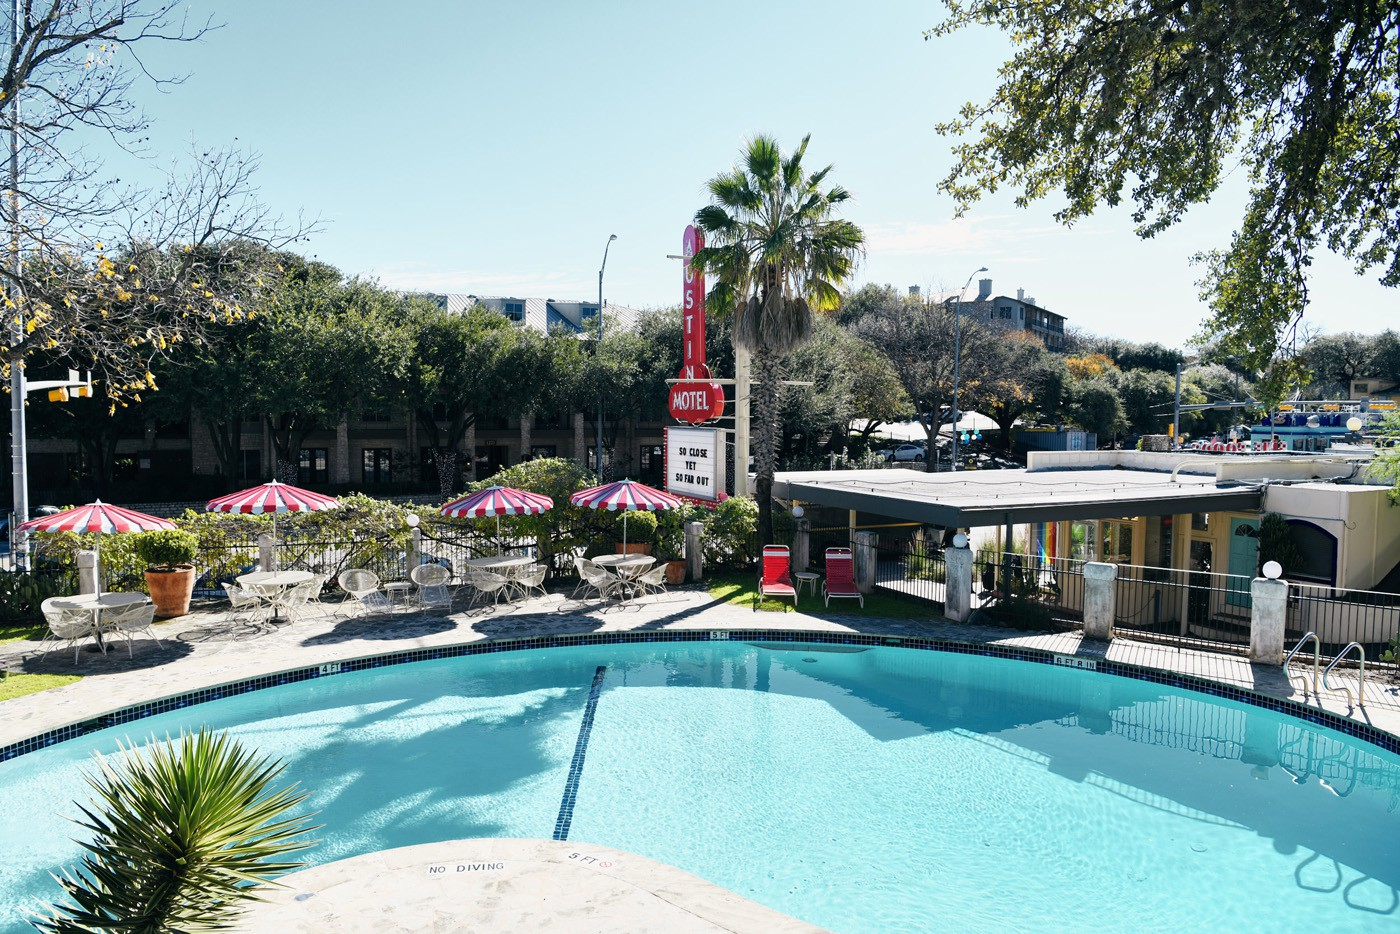 Austin Motel has the best swimming pool in town